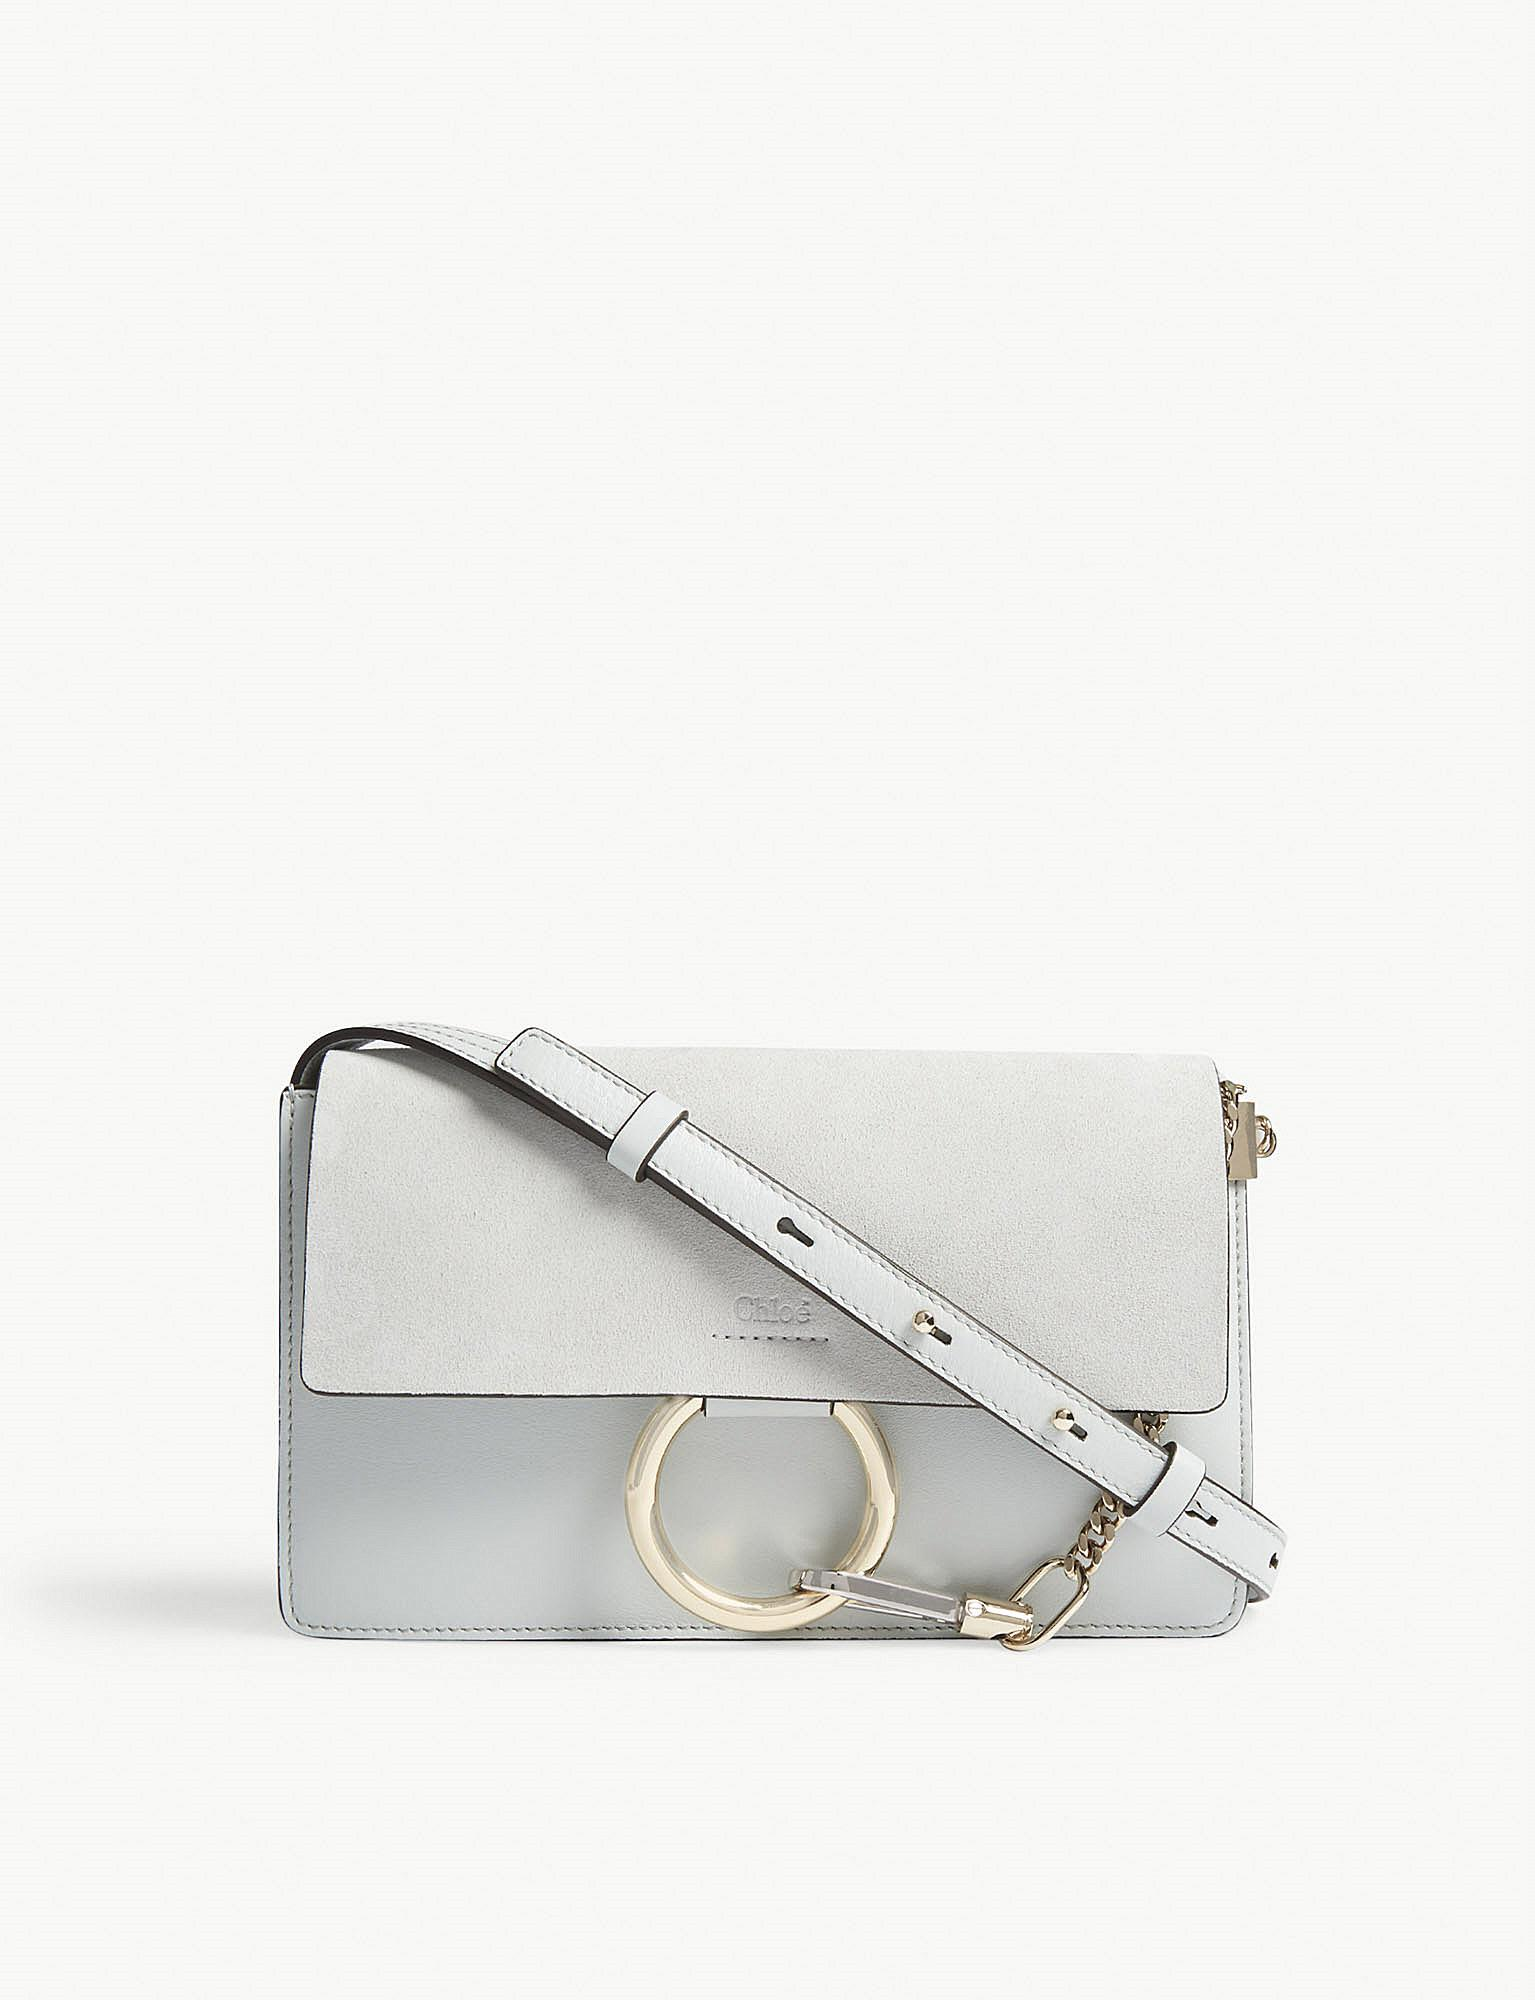 Chloé Faye Small Leather And Suede Cross-body Bag in Gray - Lyst 6ee8c7adc